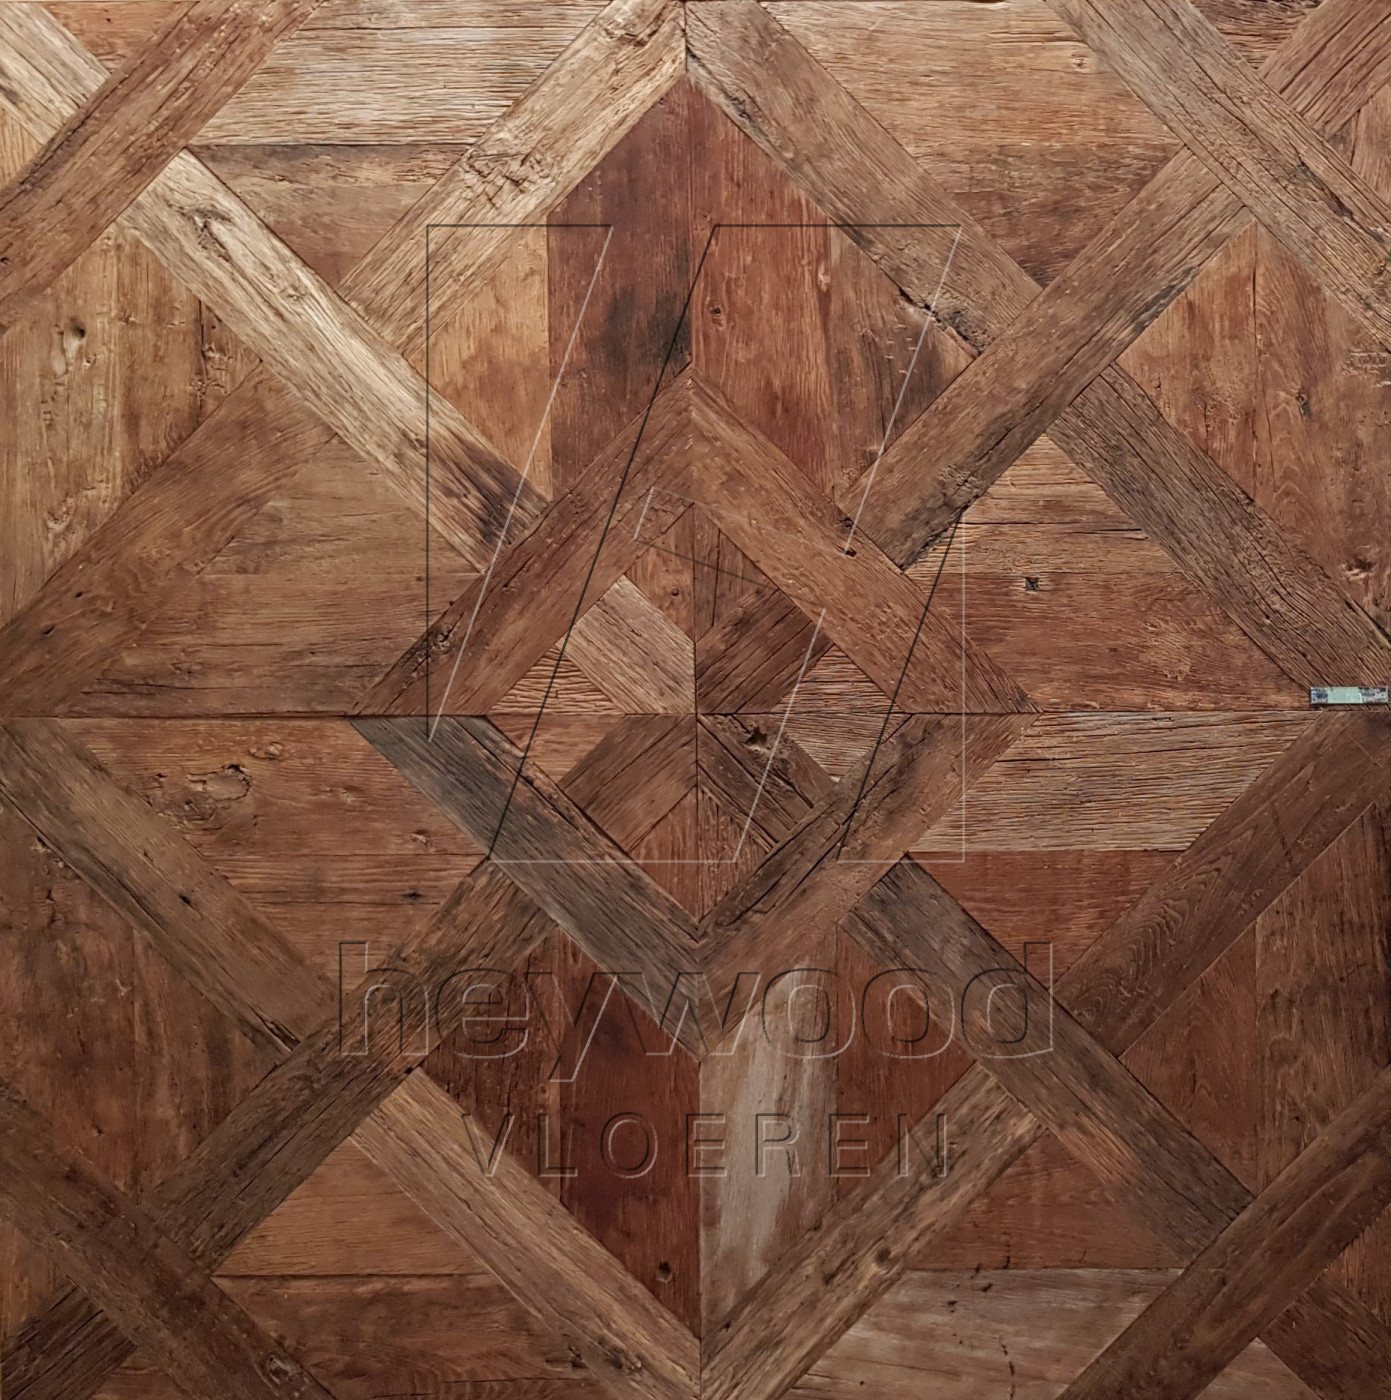 Louvre Panel 'Cotswolds' in Pattern & Panels (Outsides / Insides) of Old Reclaimed Wood